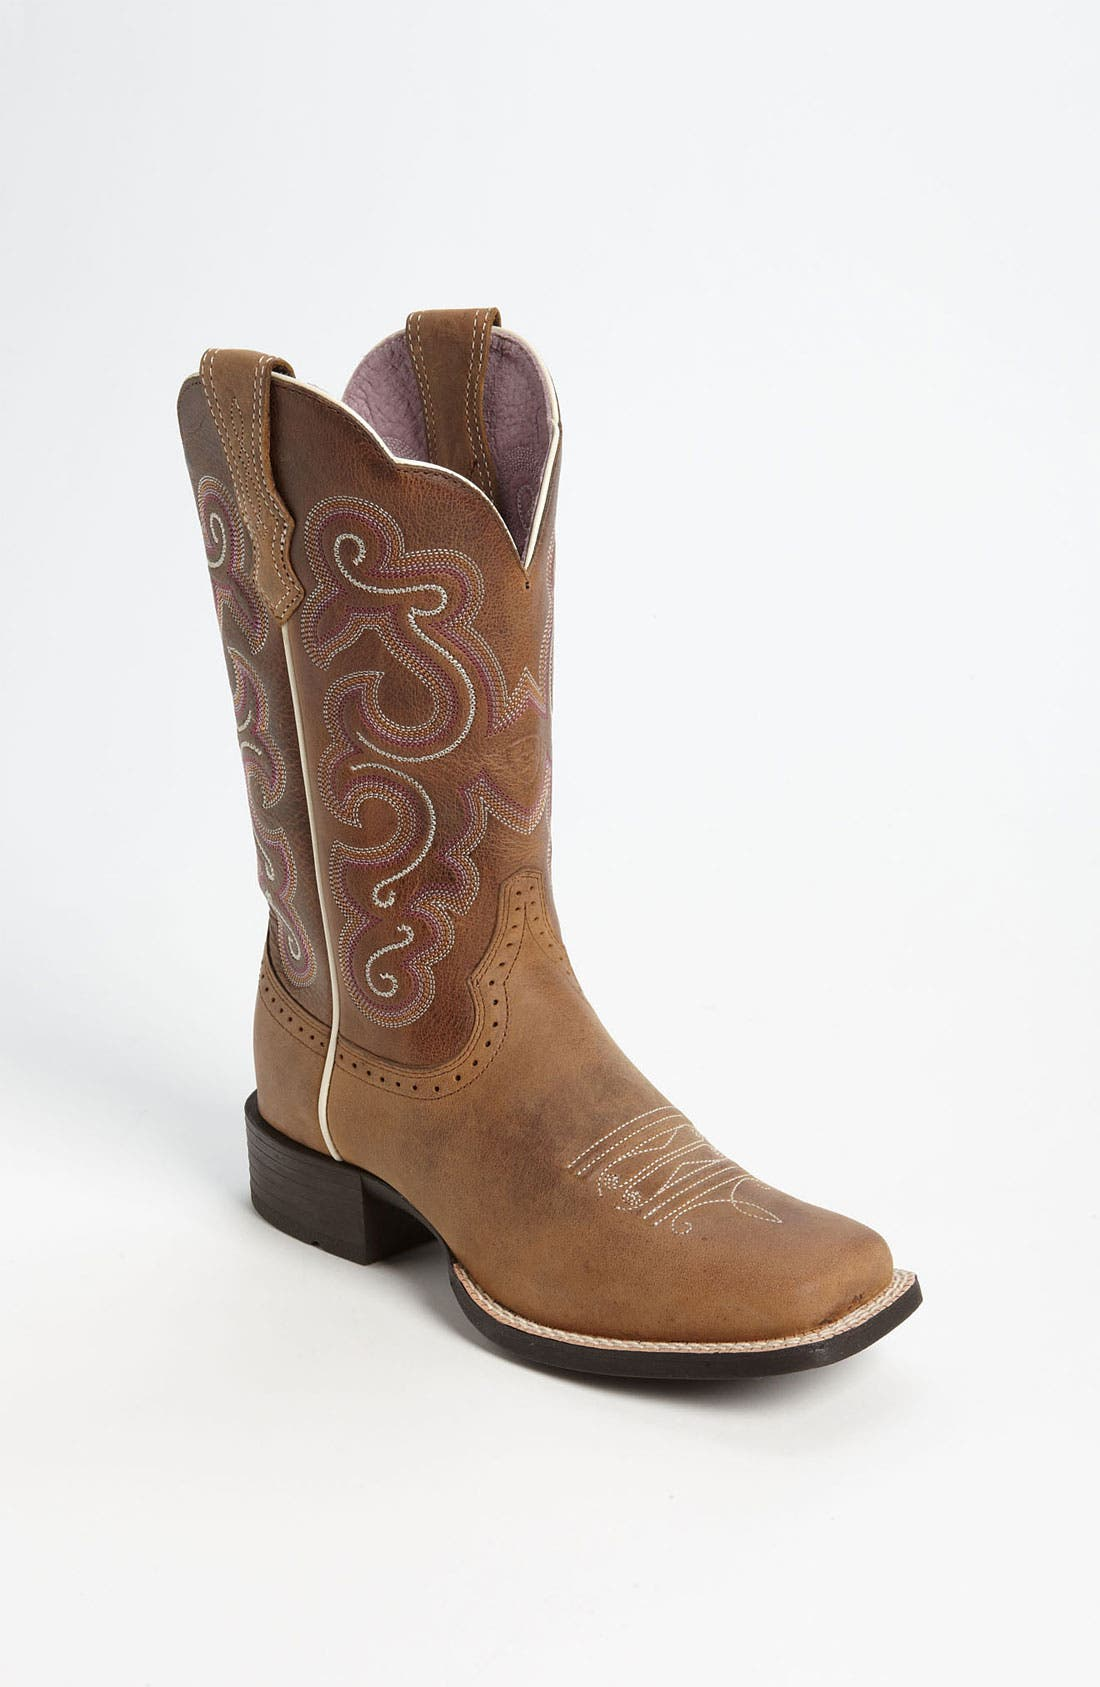 Alternate Image 1 Selected - Ariat 'Quickdraw' Boot (Online Only)